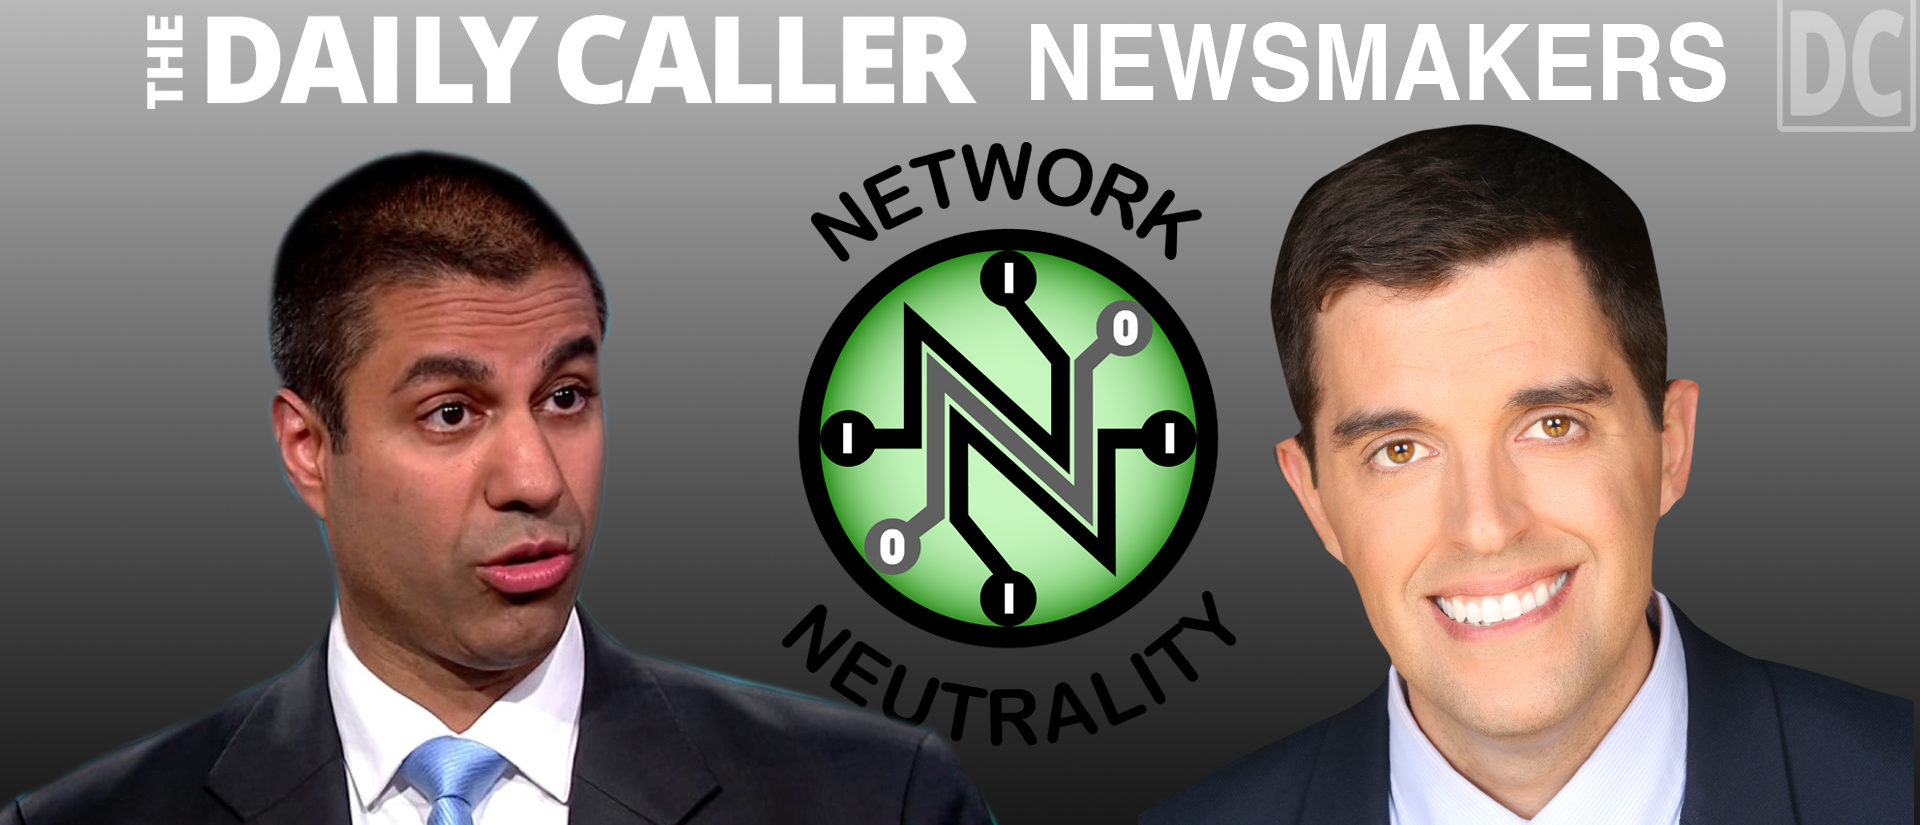 Ajit Pai, Vince Coglianese (The Daily Caller)